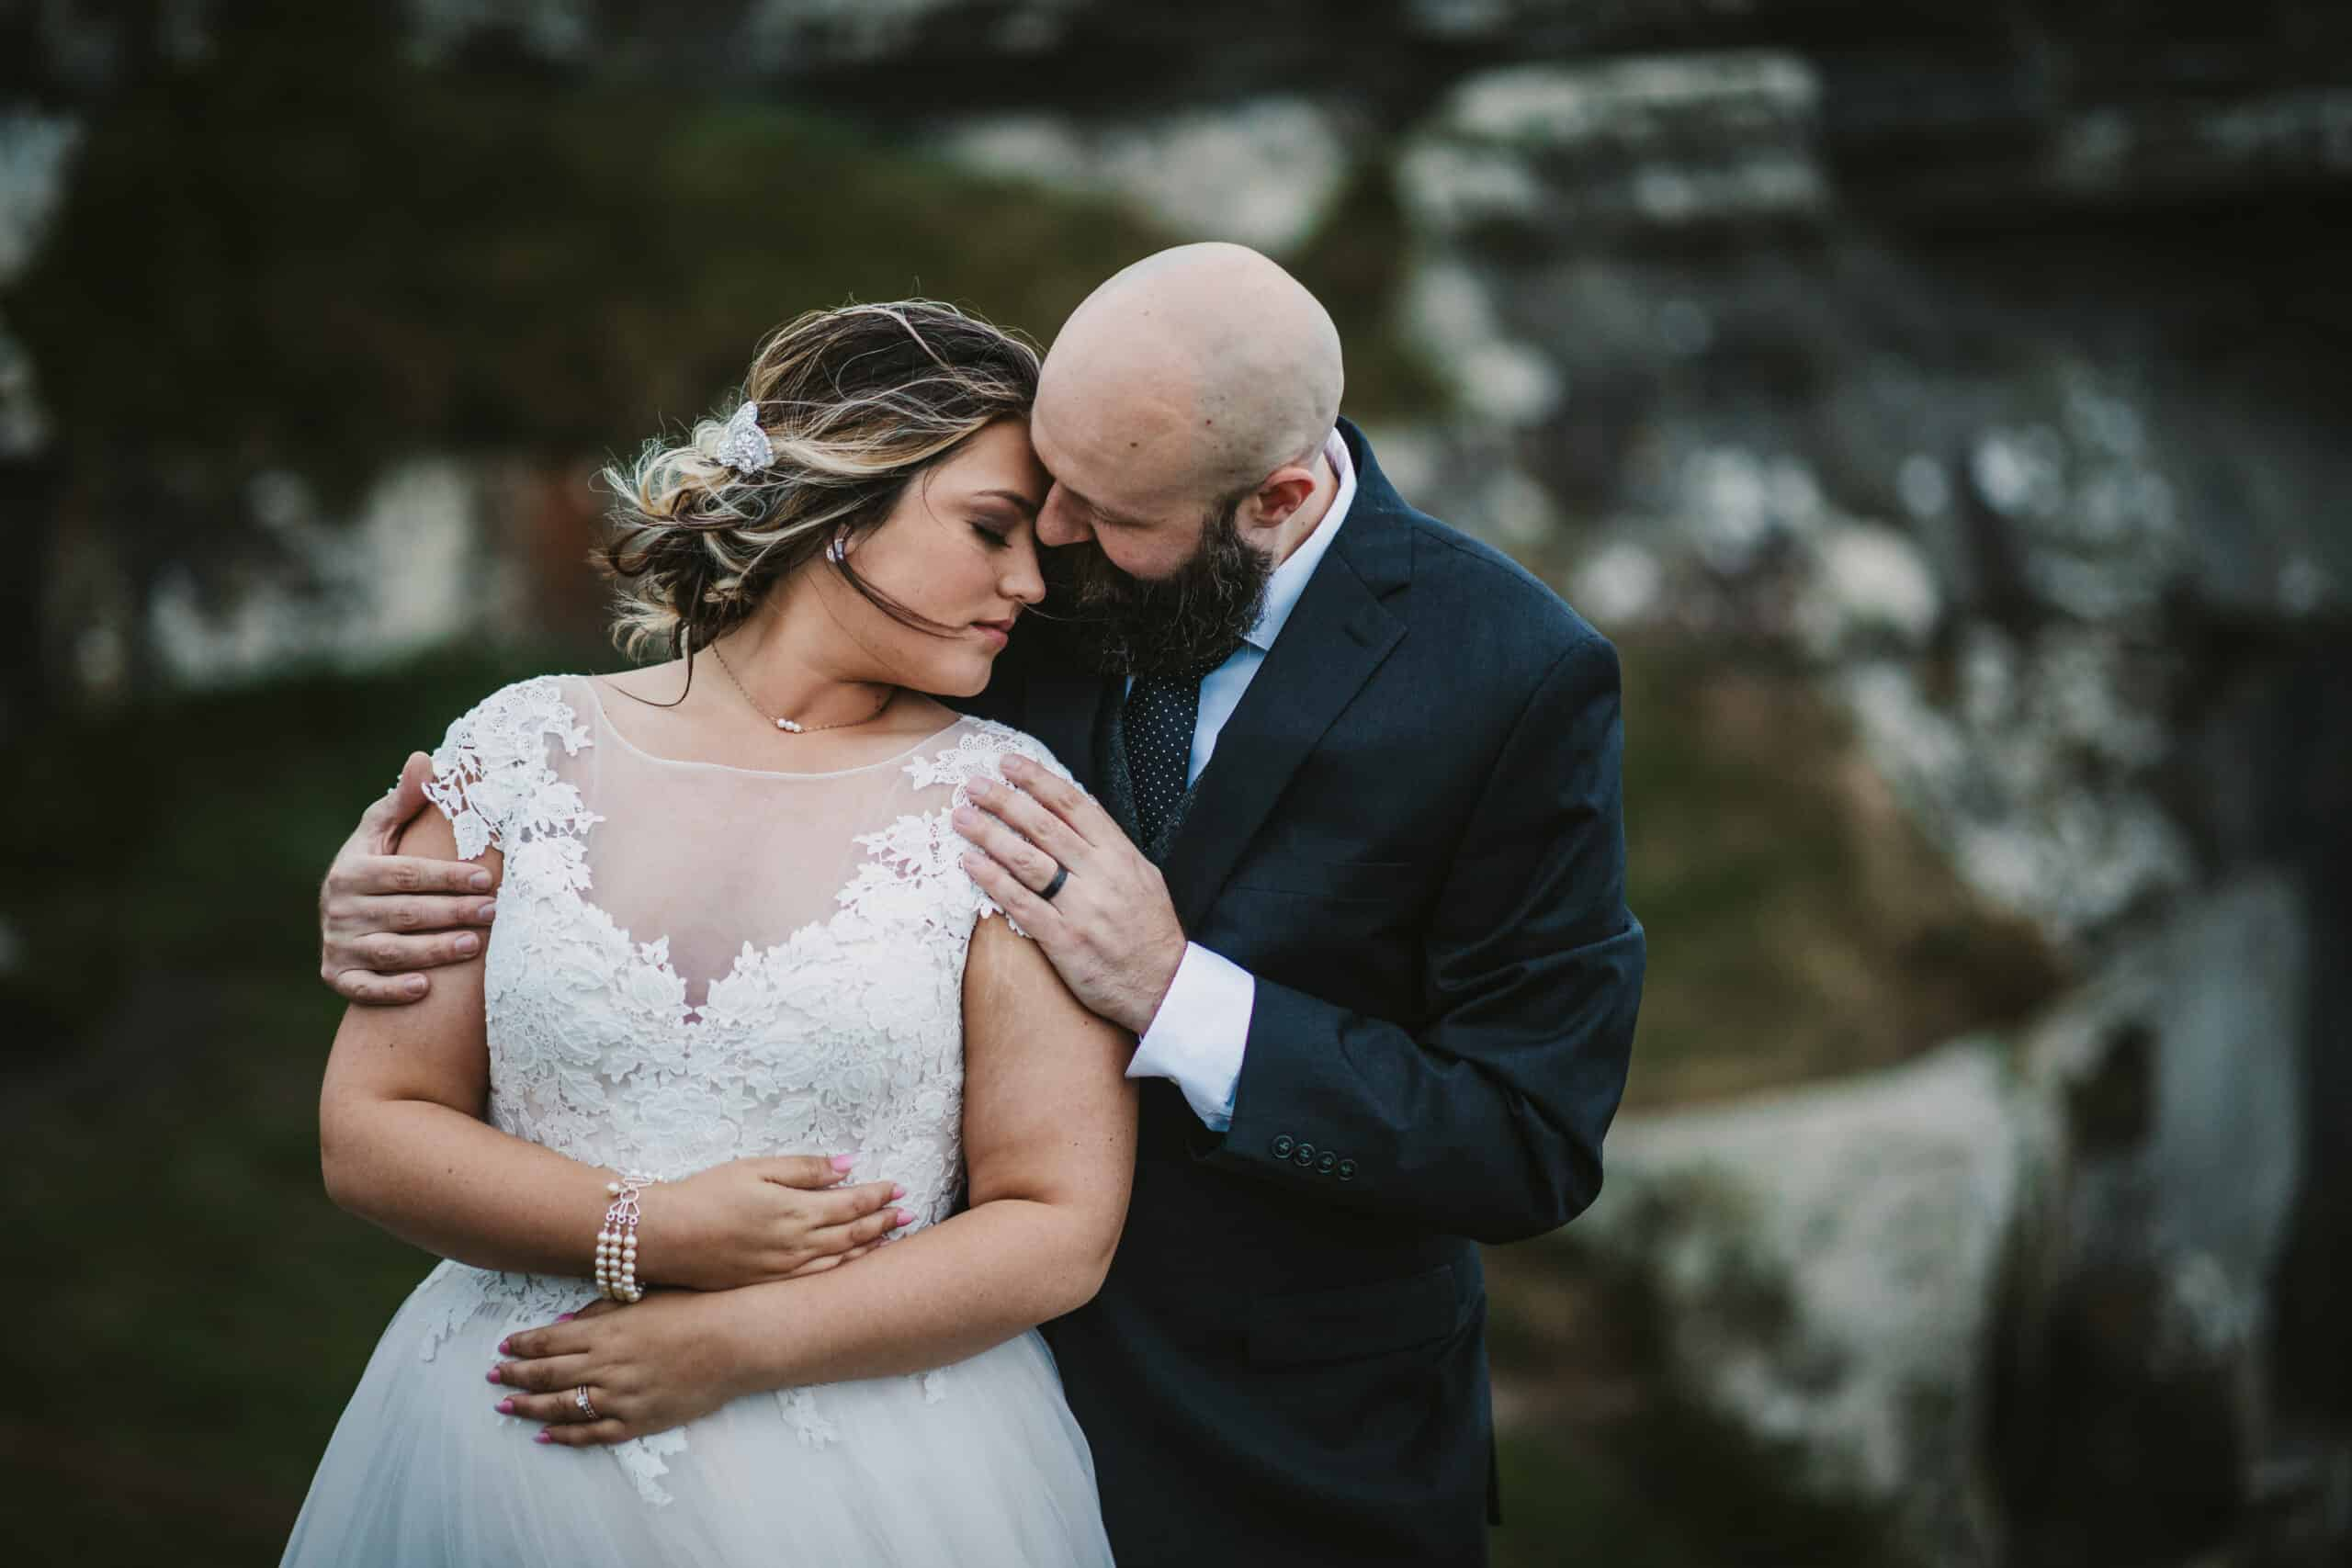 Cliffs of Moher Wedding Hags head, groom holds bride